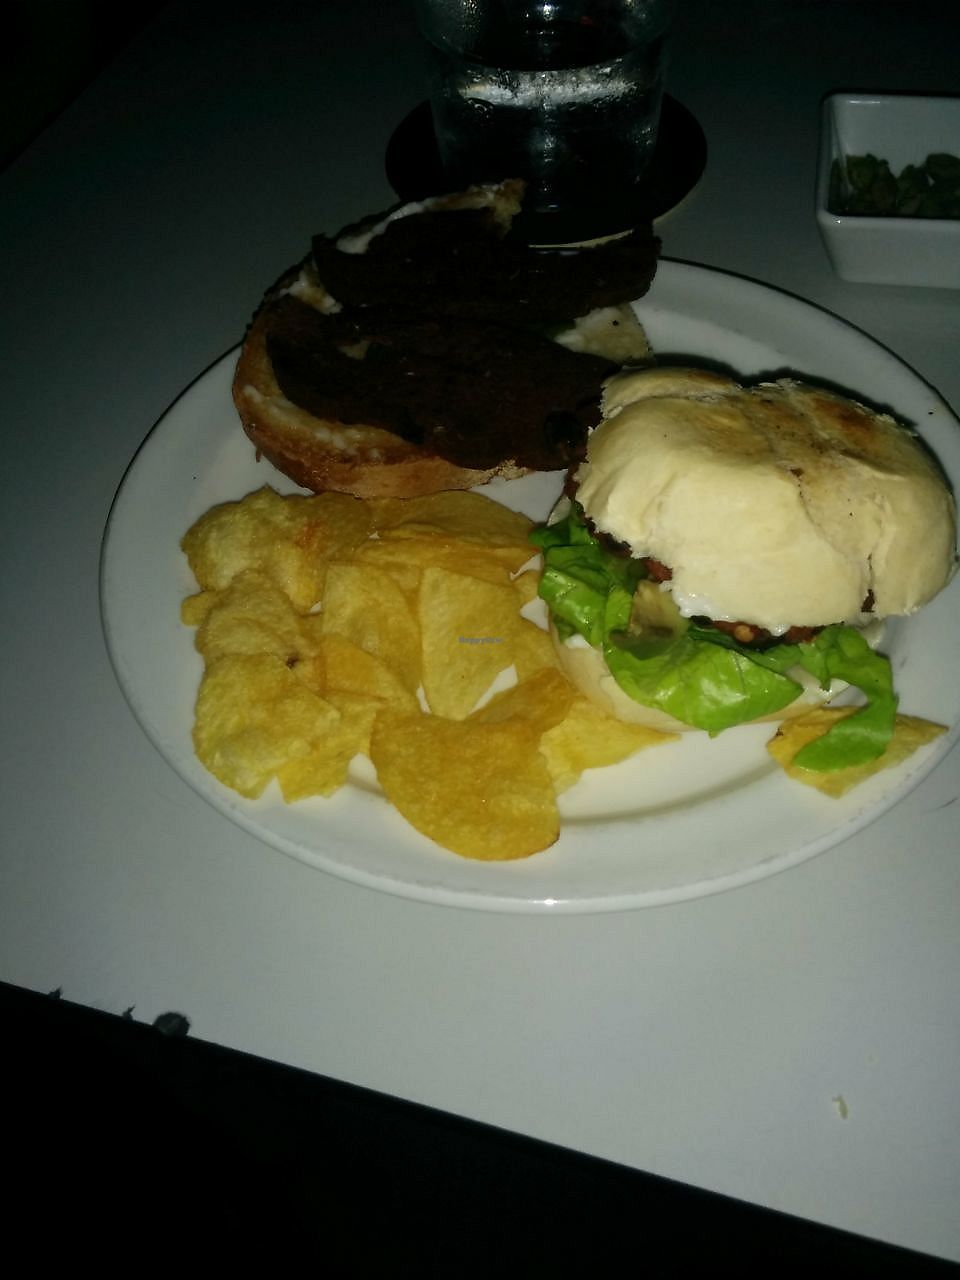 """Photo of CLOSED: Sacio Bar  by <a href=""""/members/profile/FlokiTheCat"""">FlokiTheCat</a> <br/>Vegan chorizo and mex burger <br/> September 22, 2017  - <a href='/contact/abuse/image/79805/307149'>Report</a>"""